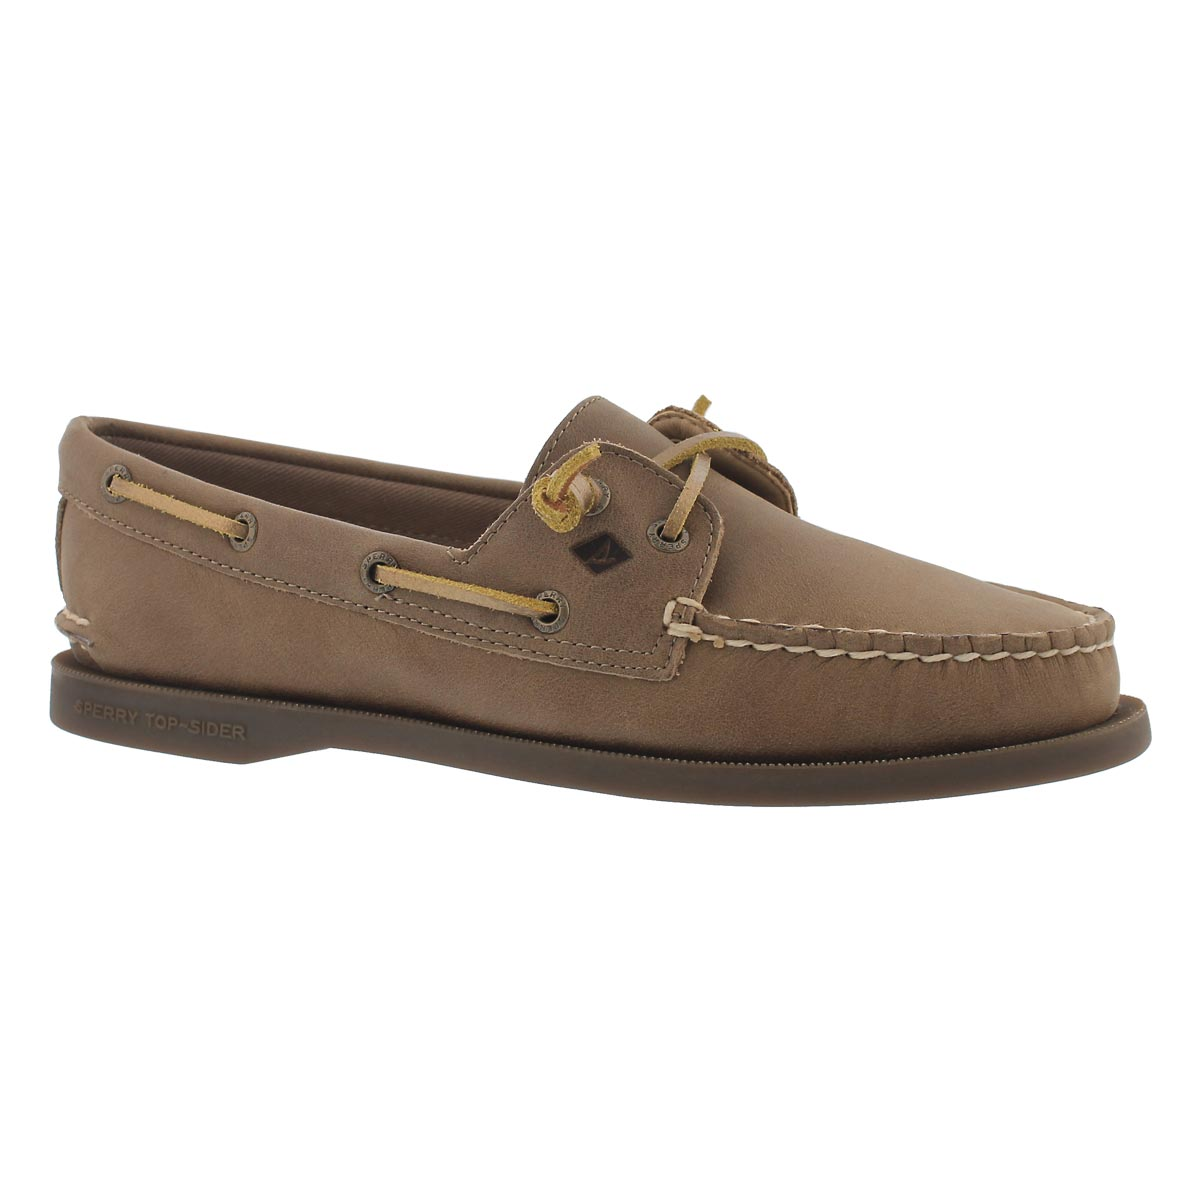 Women's A/O Vida pinebark boat shoes